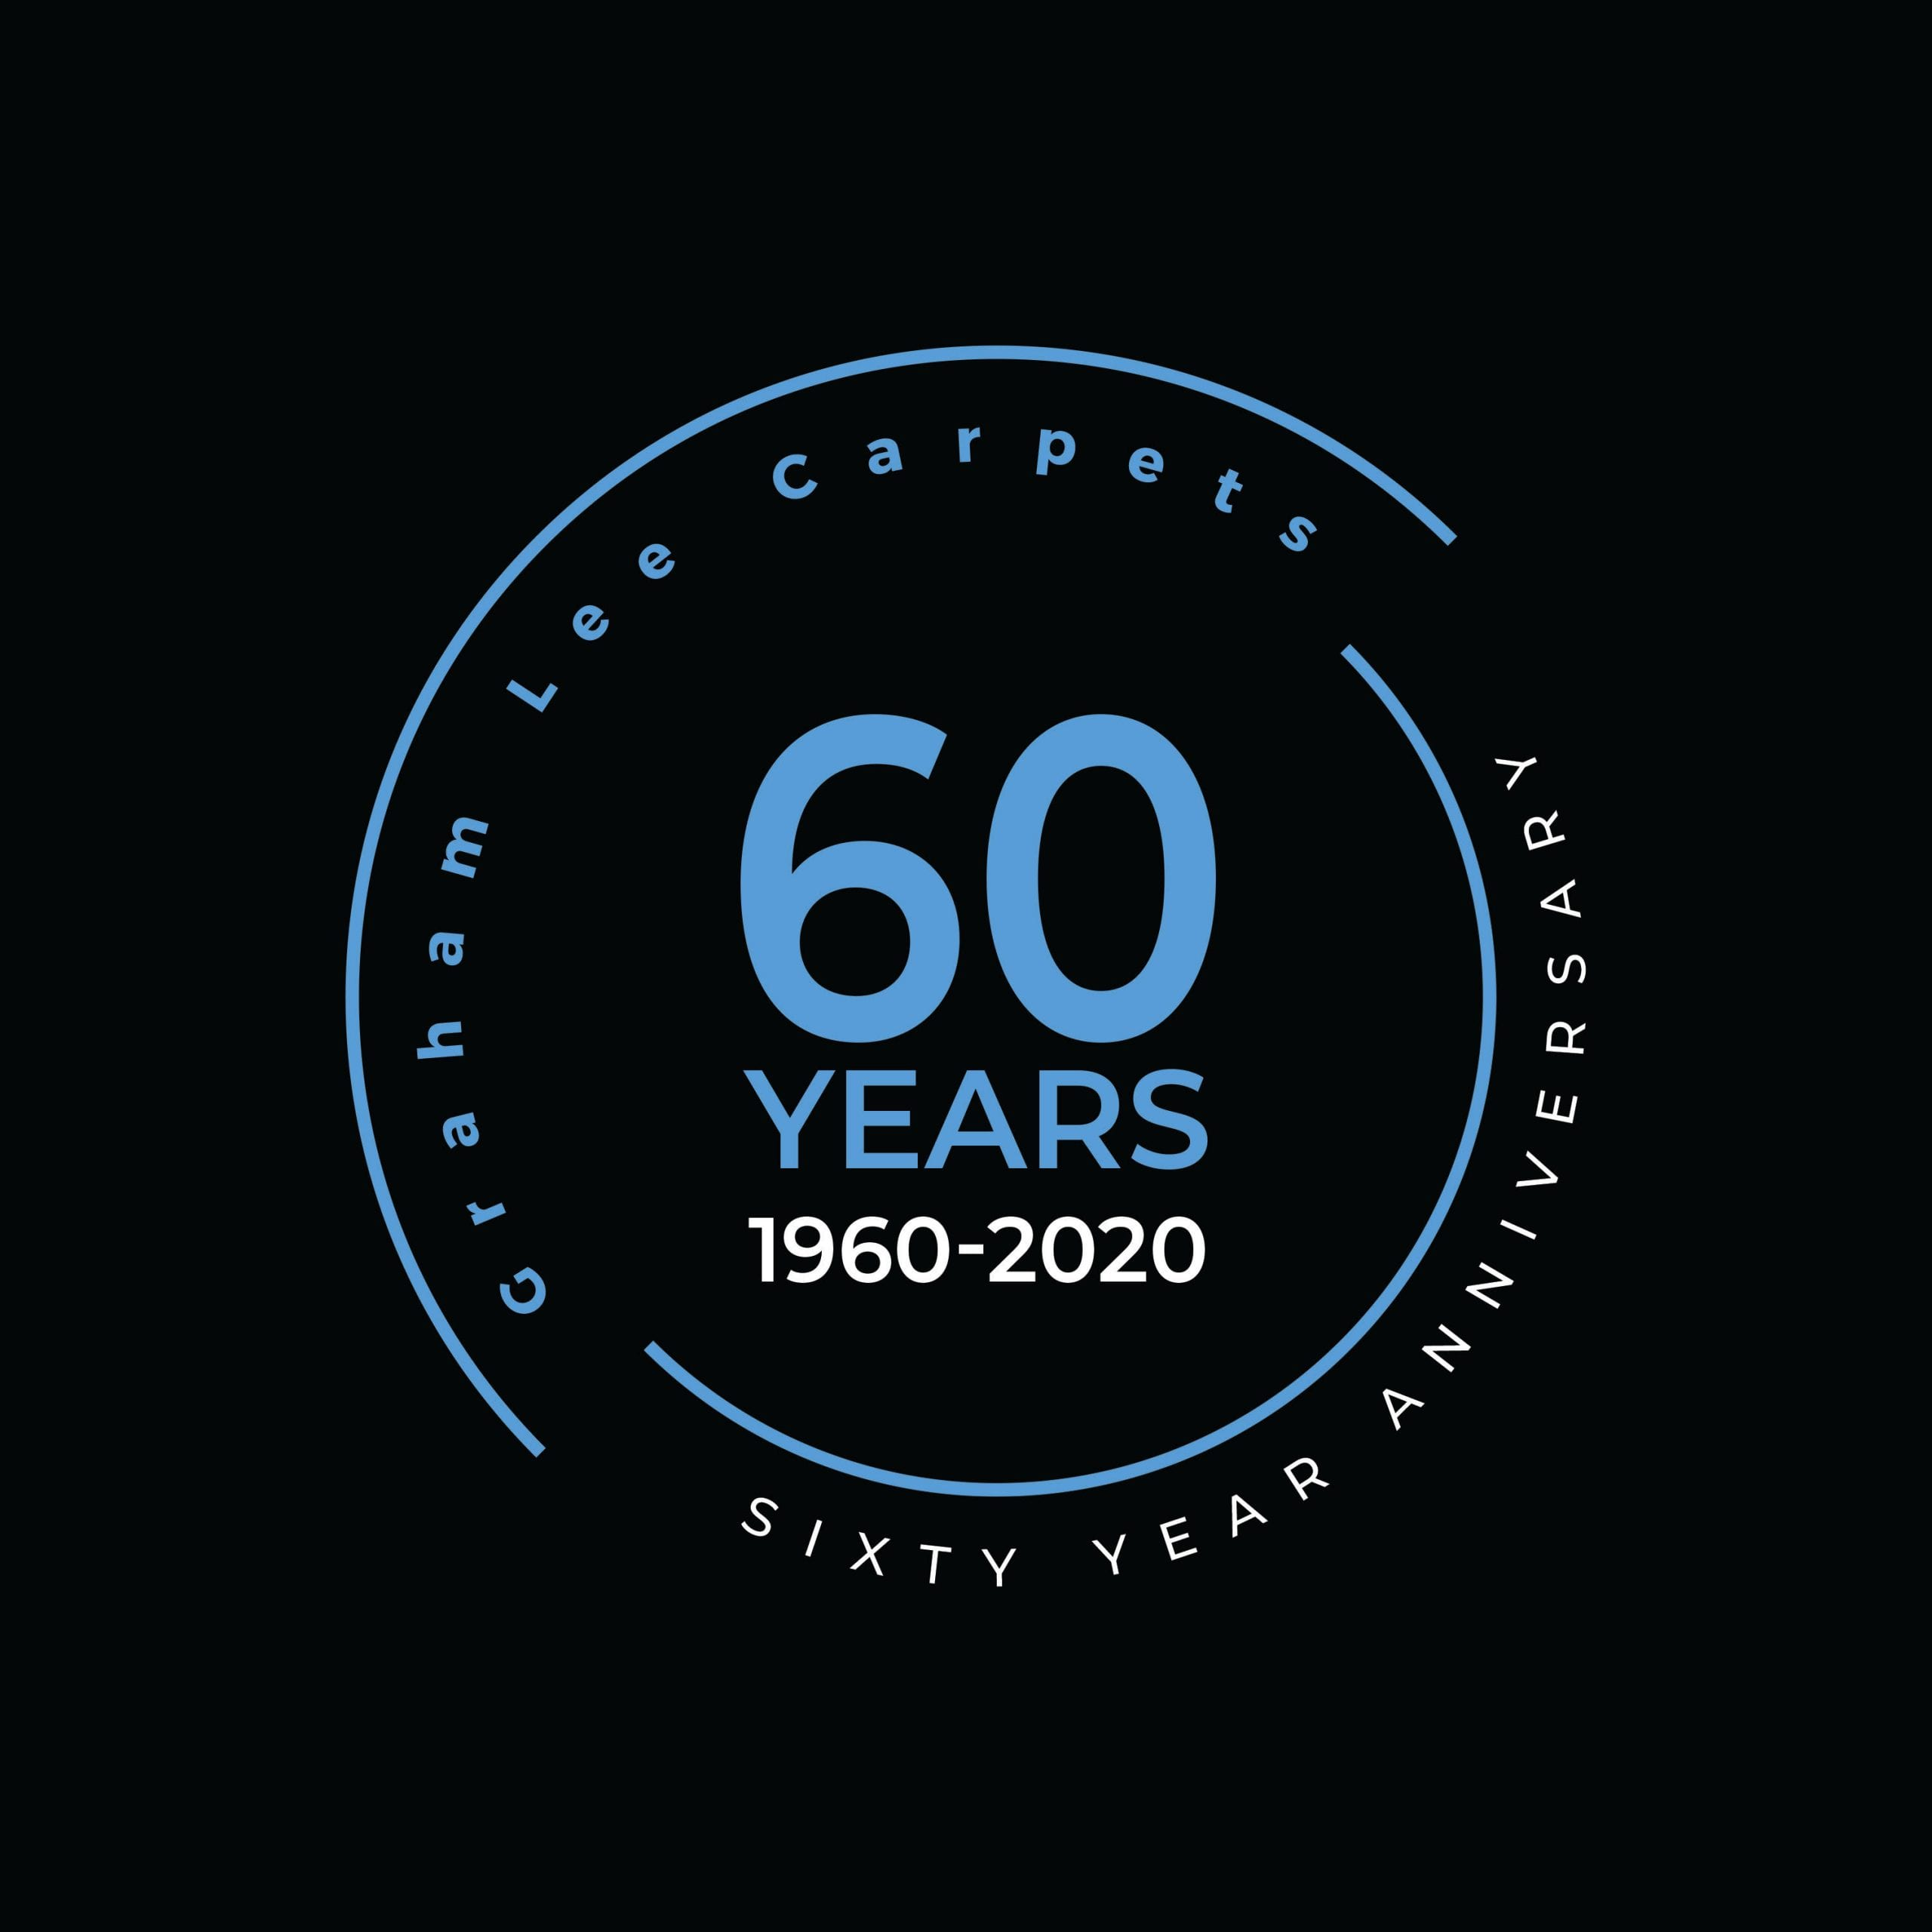 Graham Lee Carpets - 60 Year Anniversary Logo